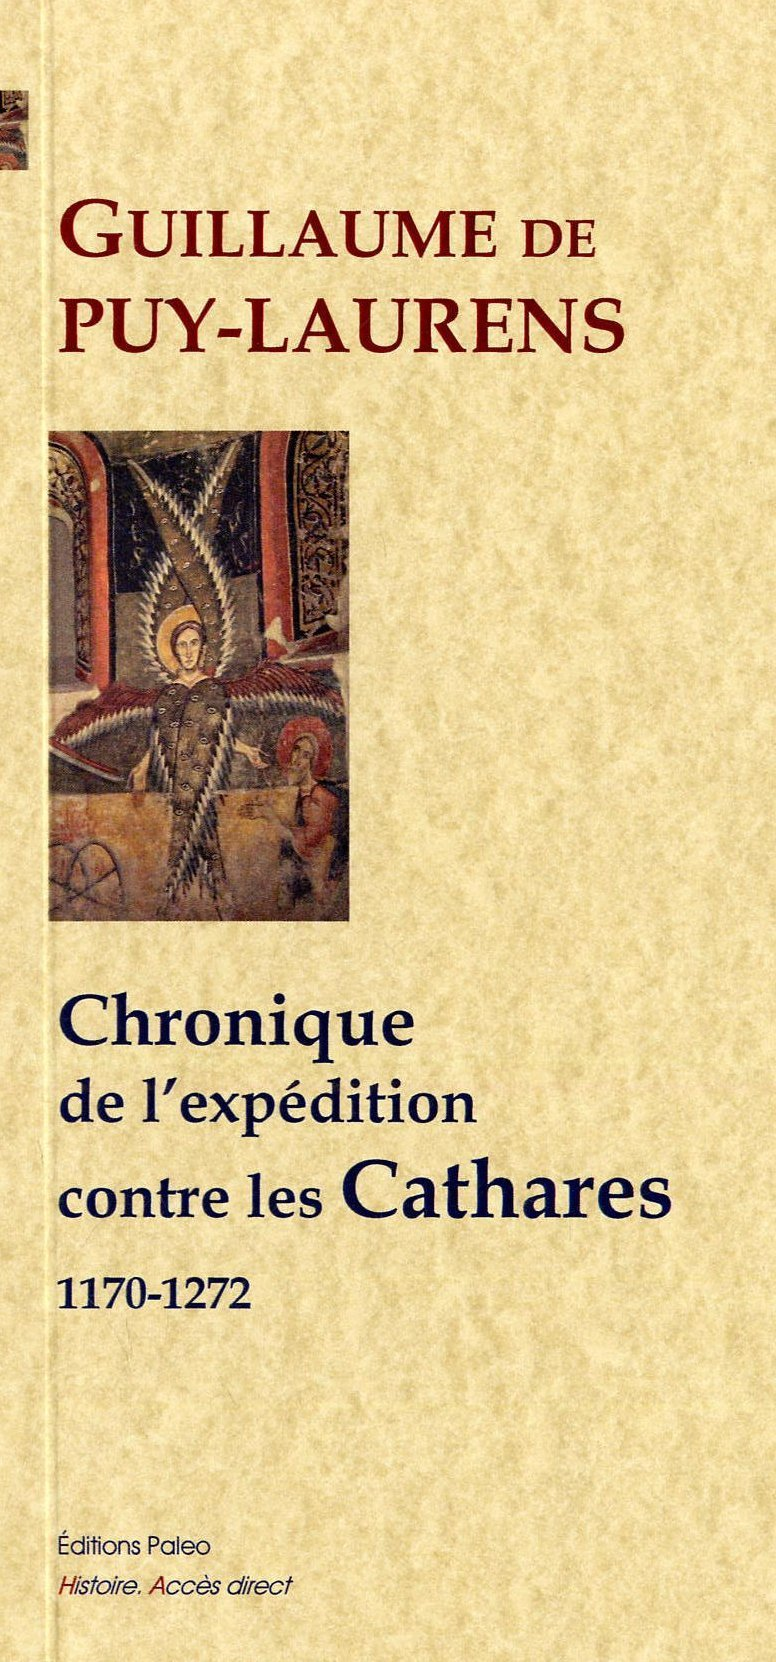 CHRONIQUE DE L'EXPEDITION CONTRE LES CATHARES (1170-1272)